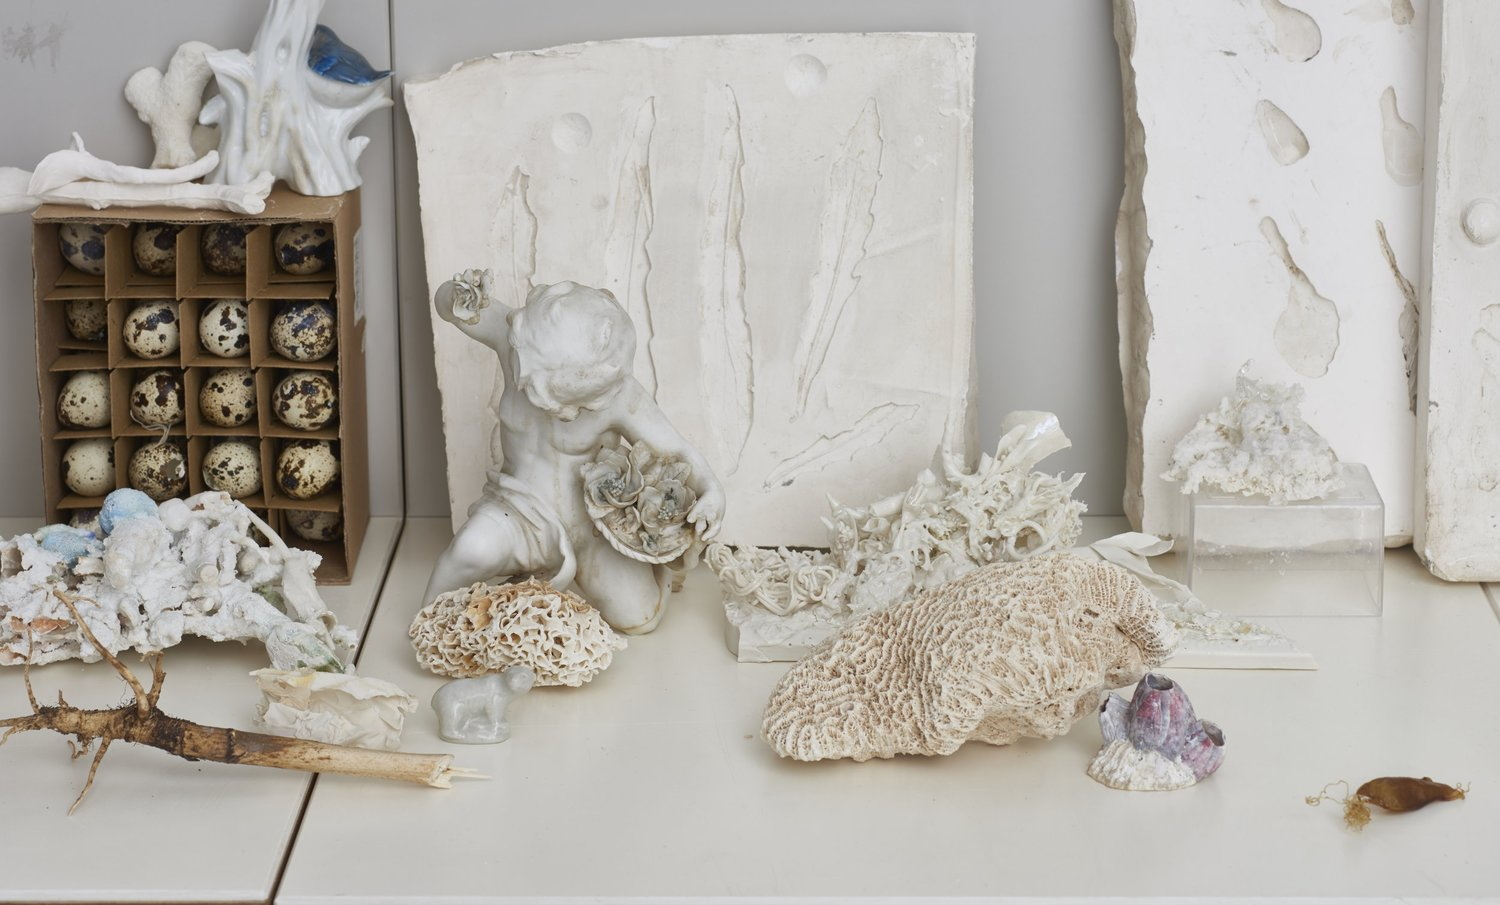 London Craft Week 2019 Lucille Lewin's Natural Ceramic Creations - Inspirations london craft week London Craft Week 2019: Lucille Lewin's Natural Ceramic Creations London Craft Week 2019 Lucille Lewin   s Natural Ceramic Creations Inspirations